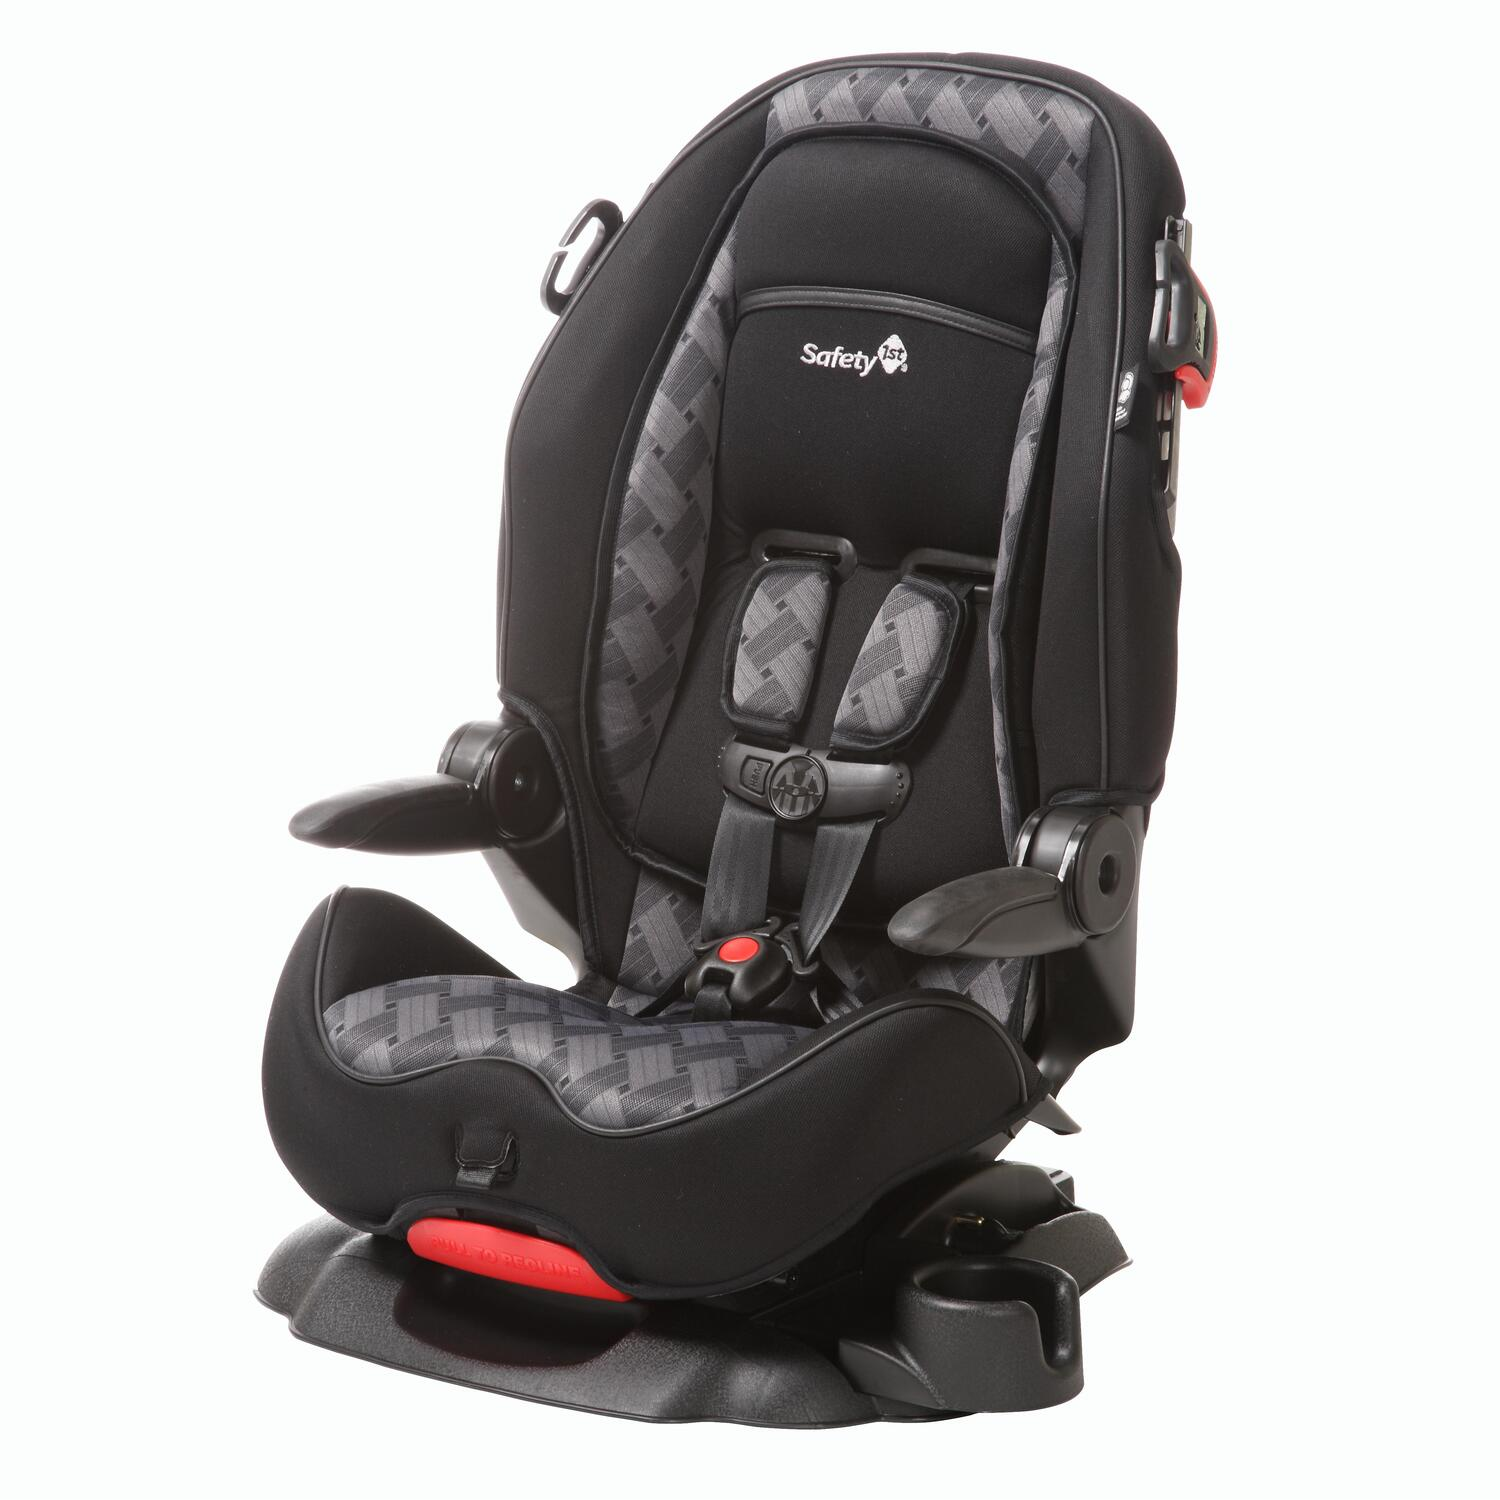 safety 1st safety 1st summit booster car seat entwine by oj commerce bc039bjf